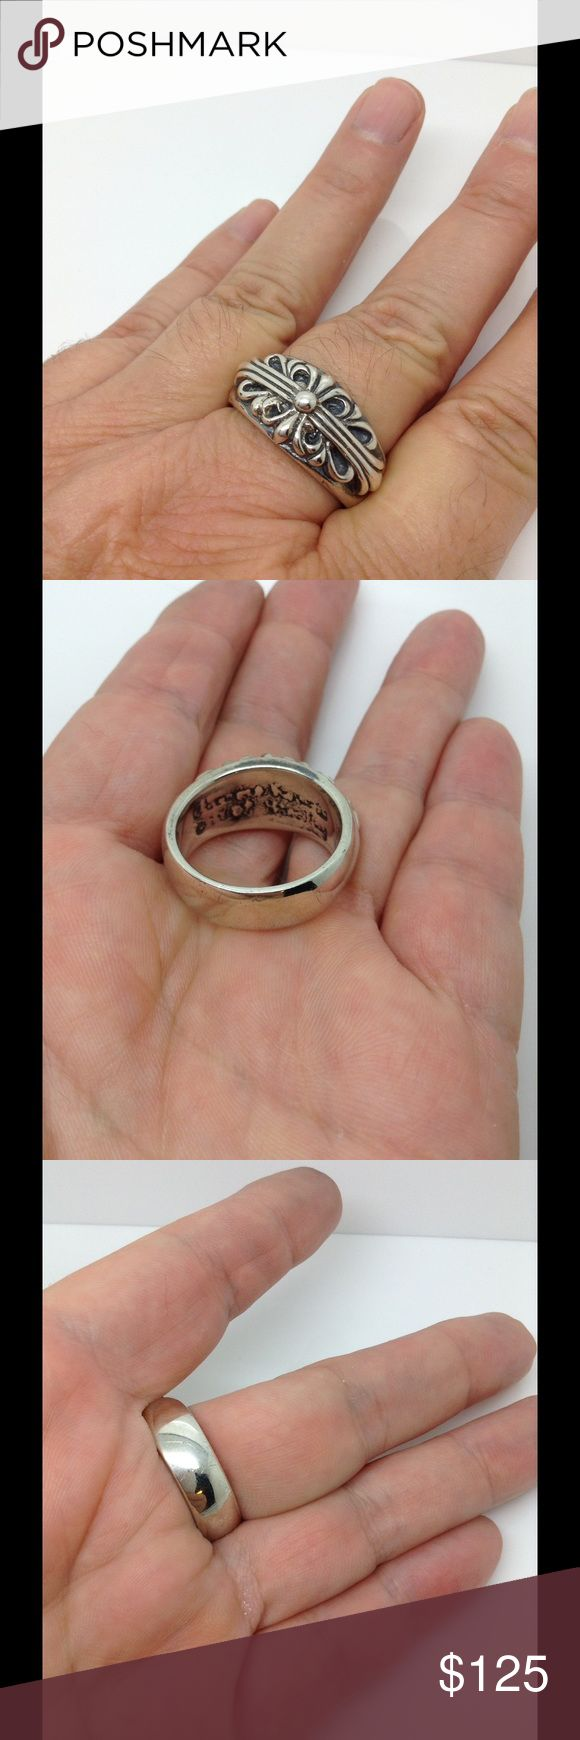 Chromes heart Sterling silver unisex ring band Firm price Chromes Jewelry Rings